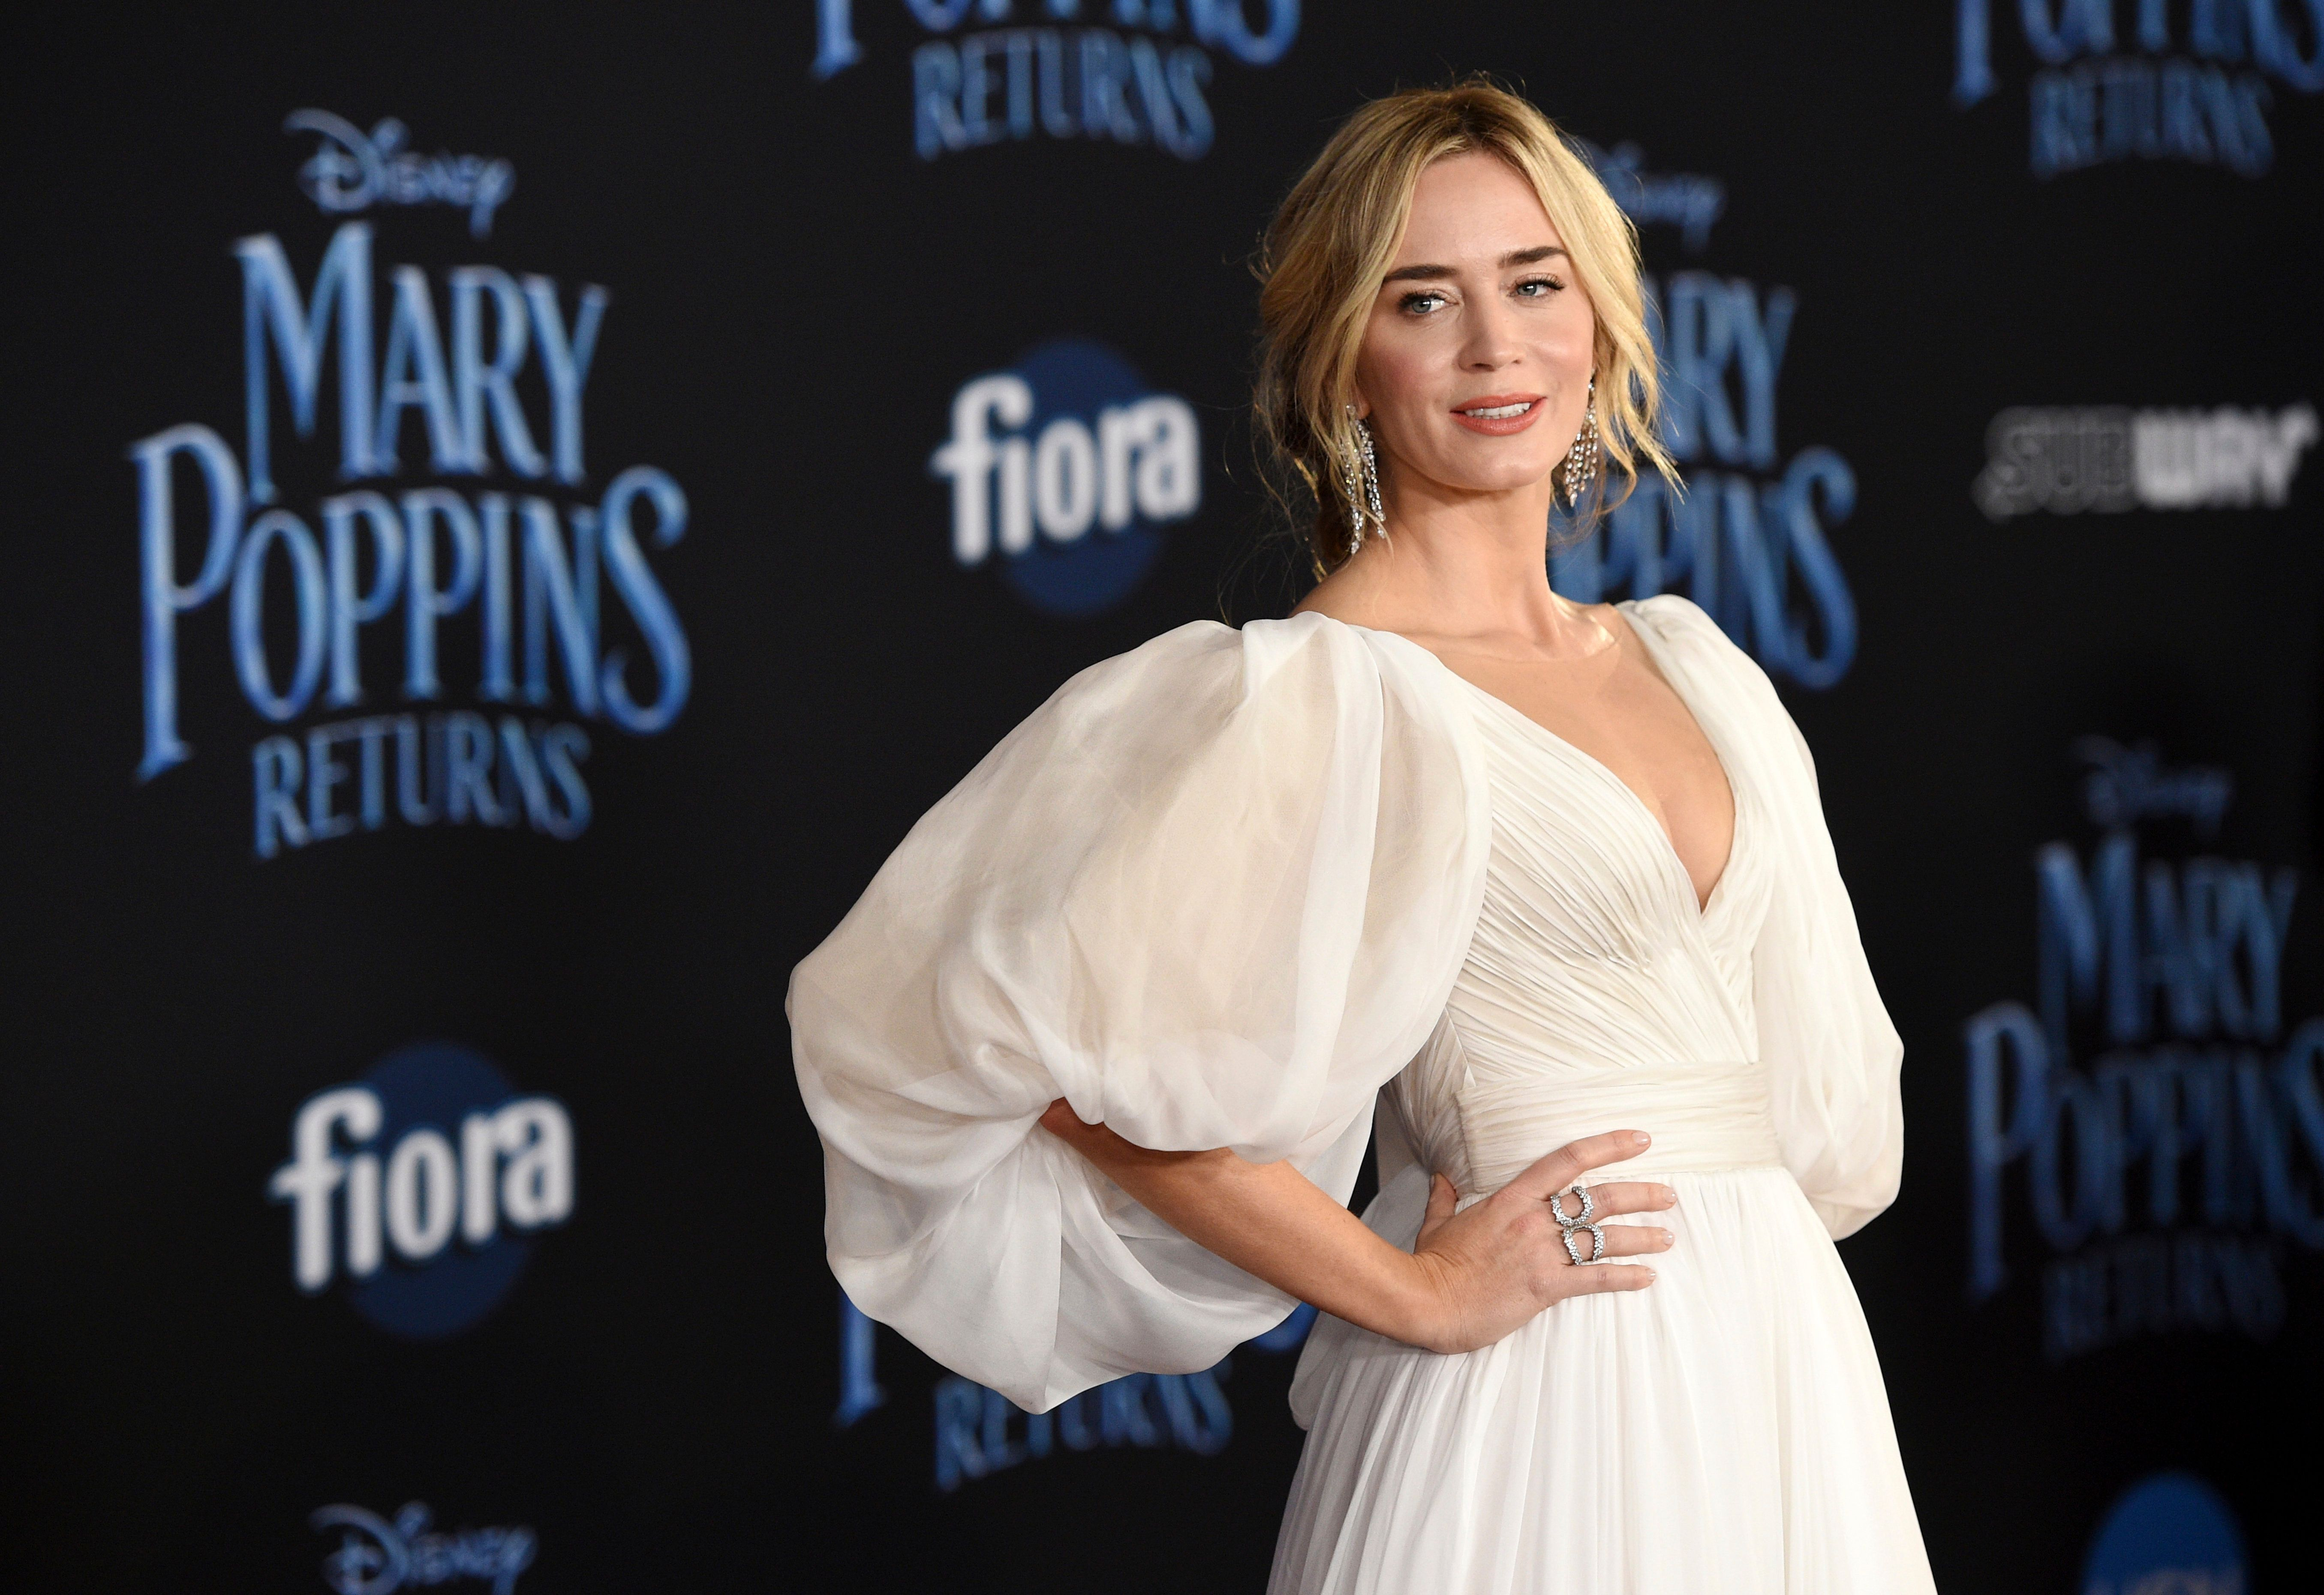 Emily Blunt Hits The Red Carpet For Disney's Sequel to Mary